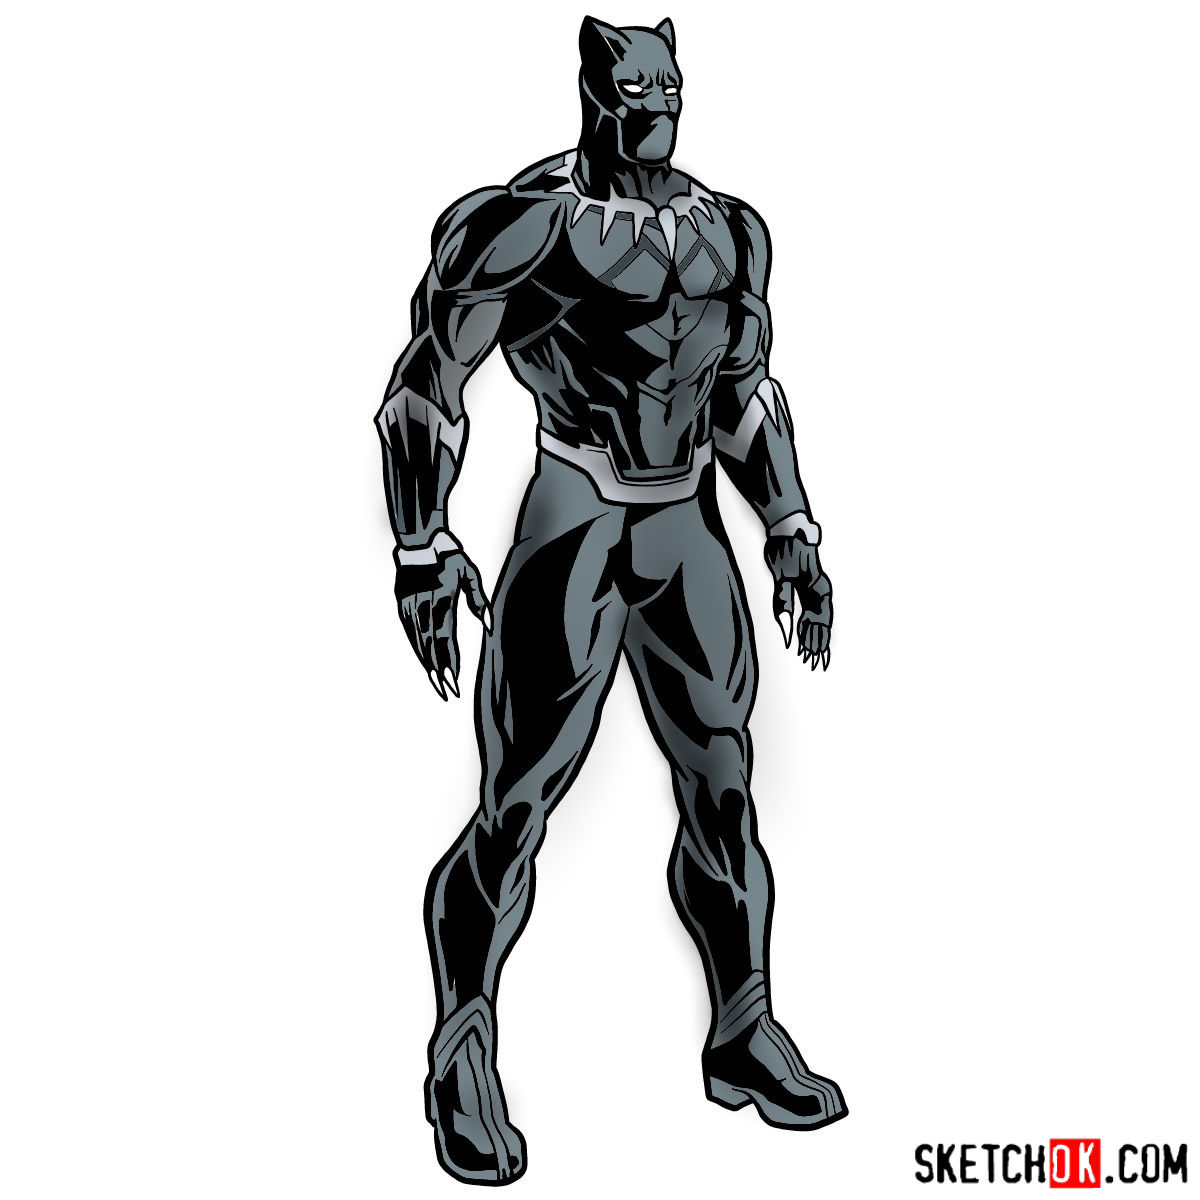 1200x1200 How To Draw Black Panther From Infinity War Film